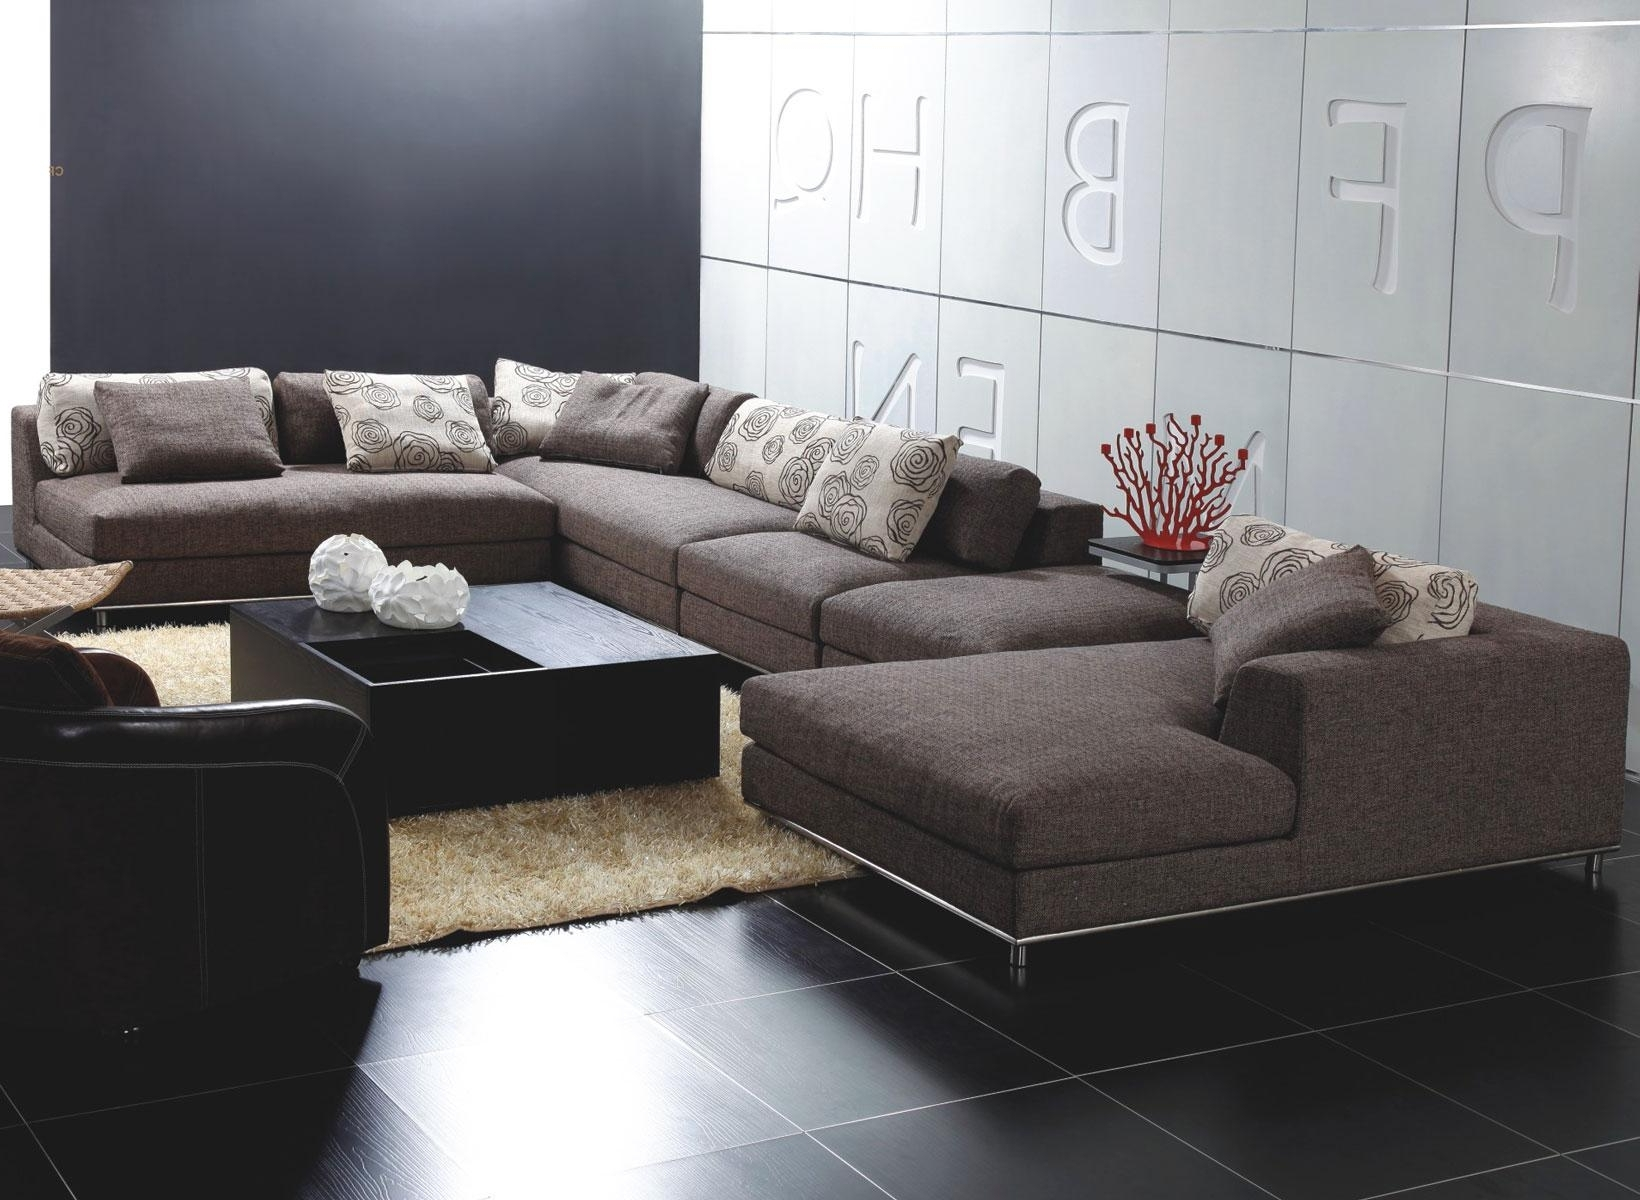 Unique Sectional Sofas Regarding Newest Stunning Modern Sectional Sofas With Chaise On Leather Reclining (View 10 of 15)